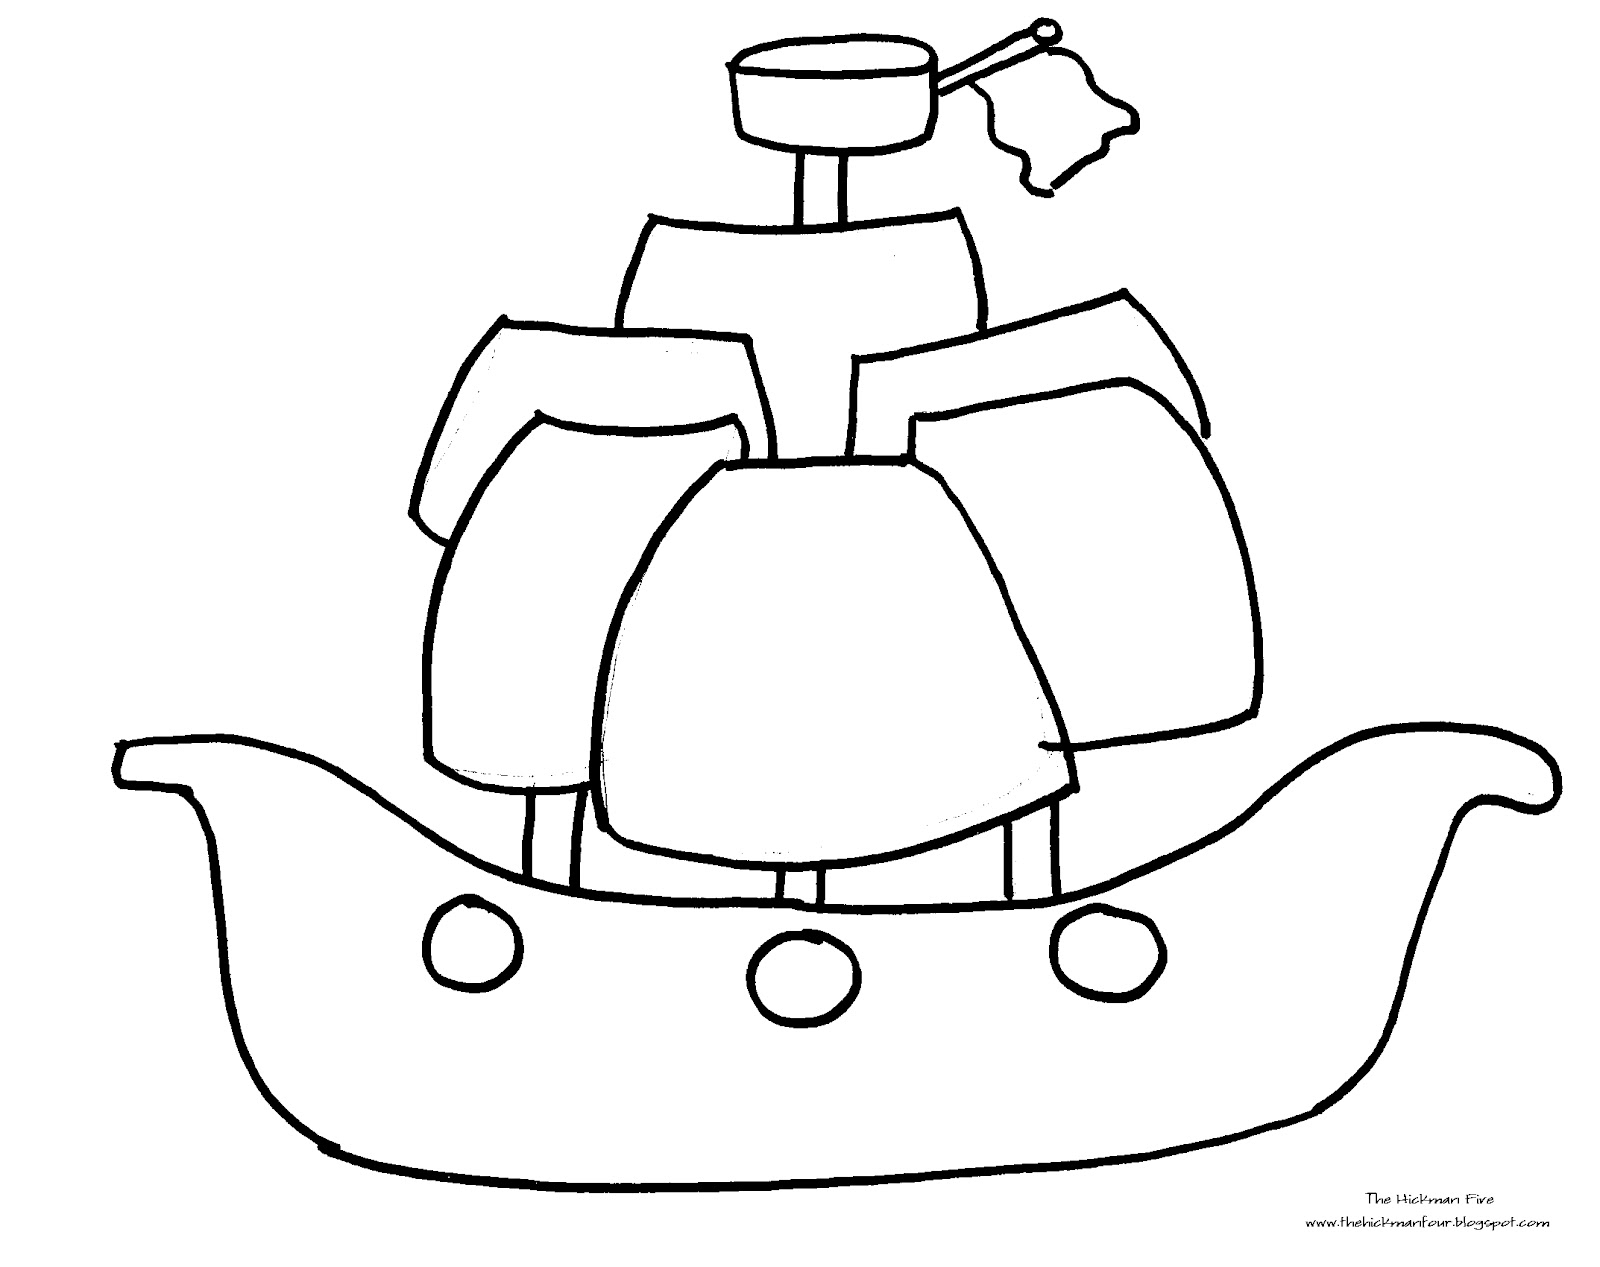 Rocket Ship Drawing | Free download on ClipArtMag